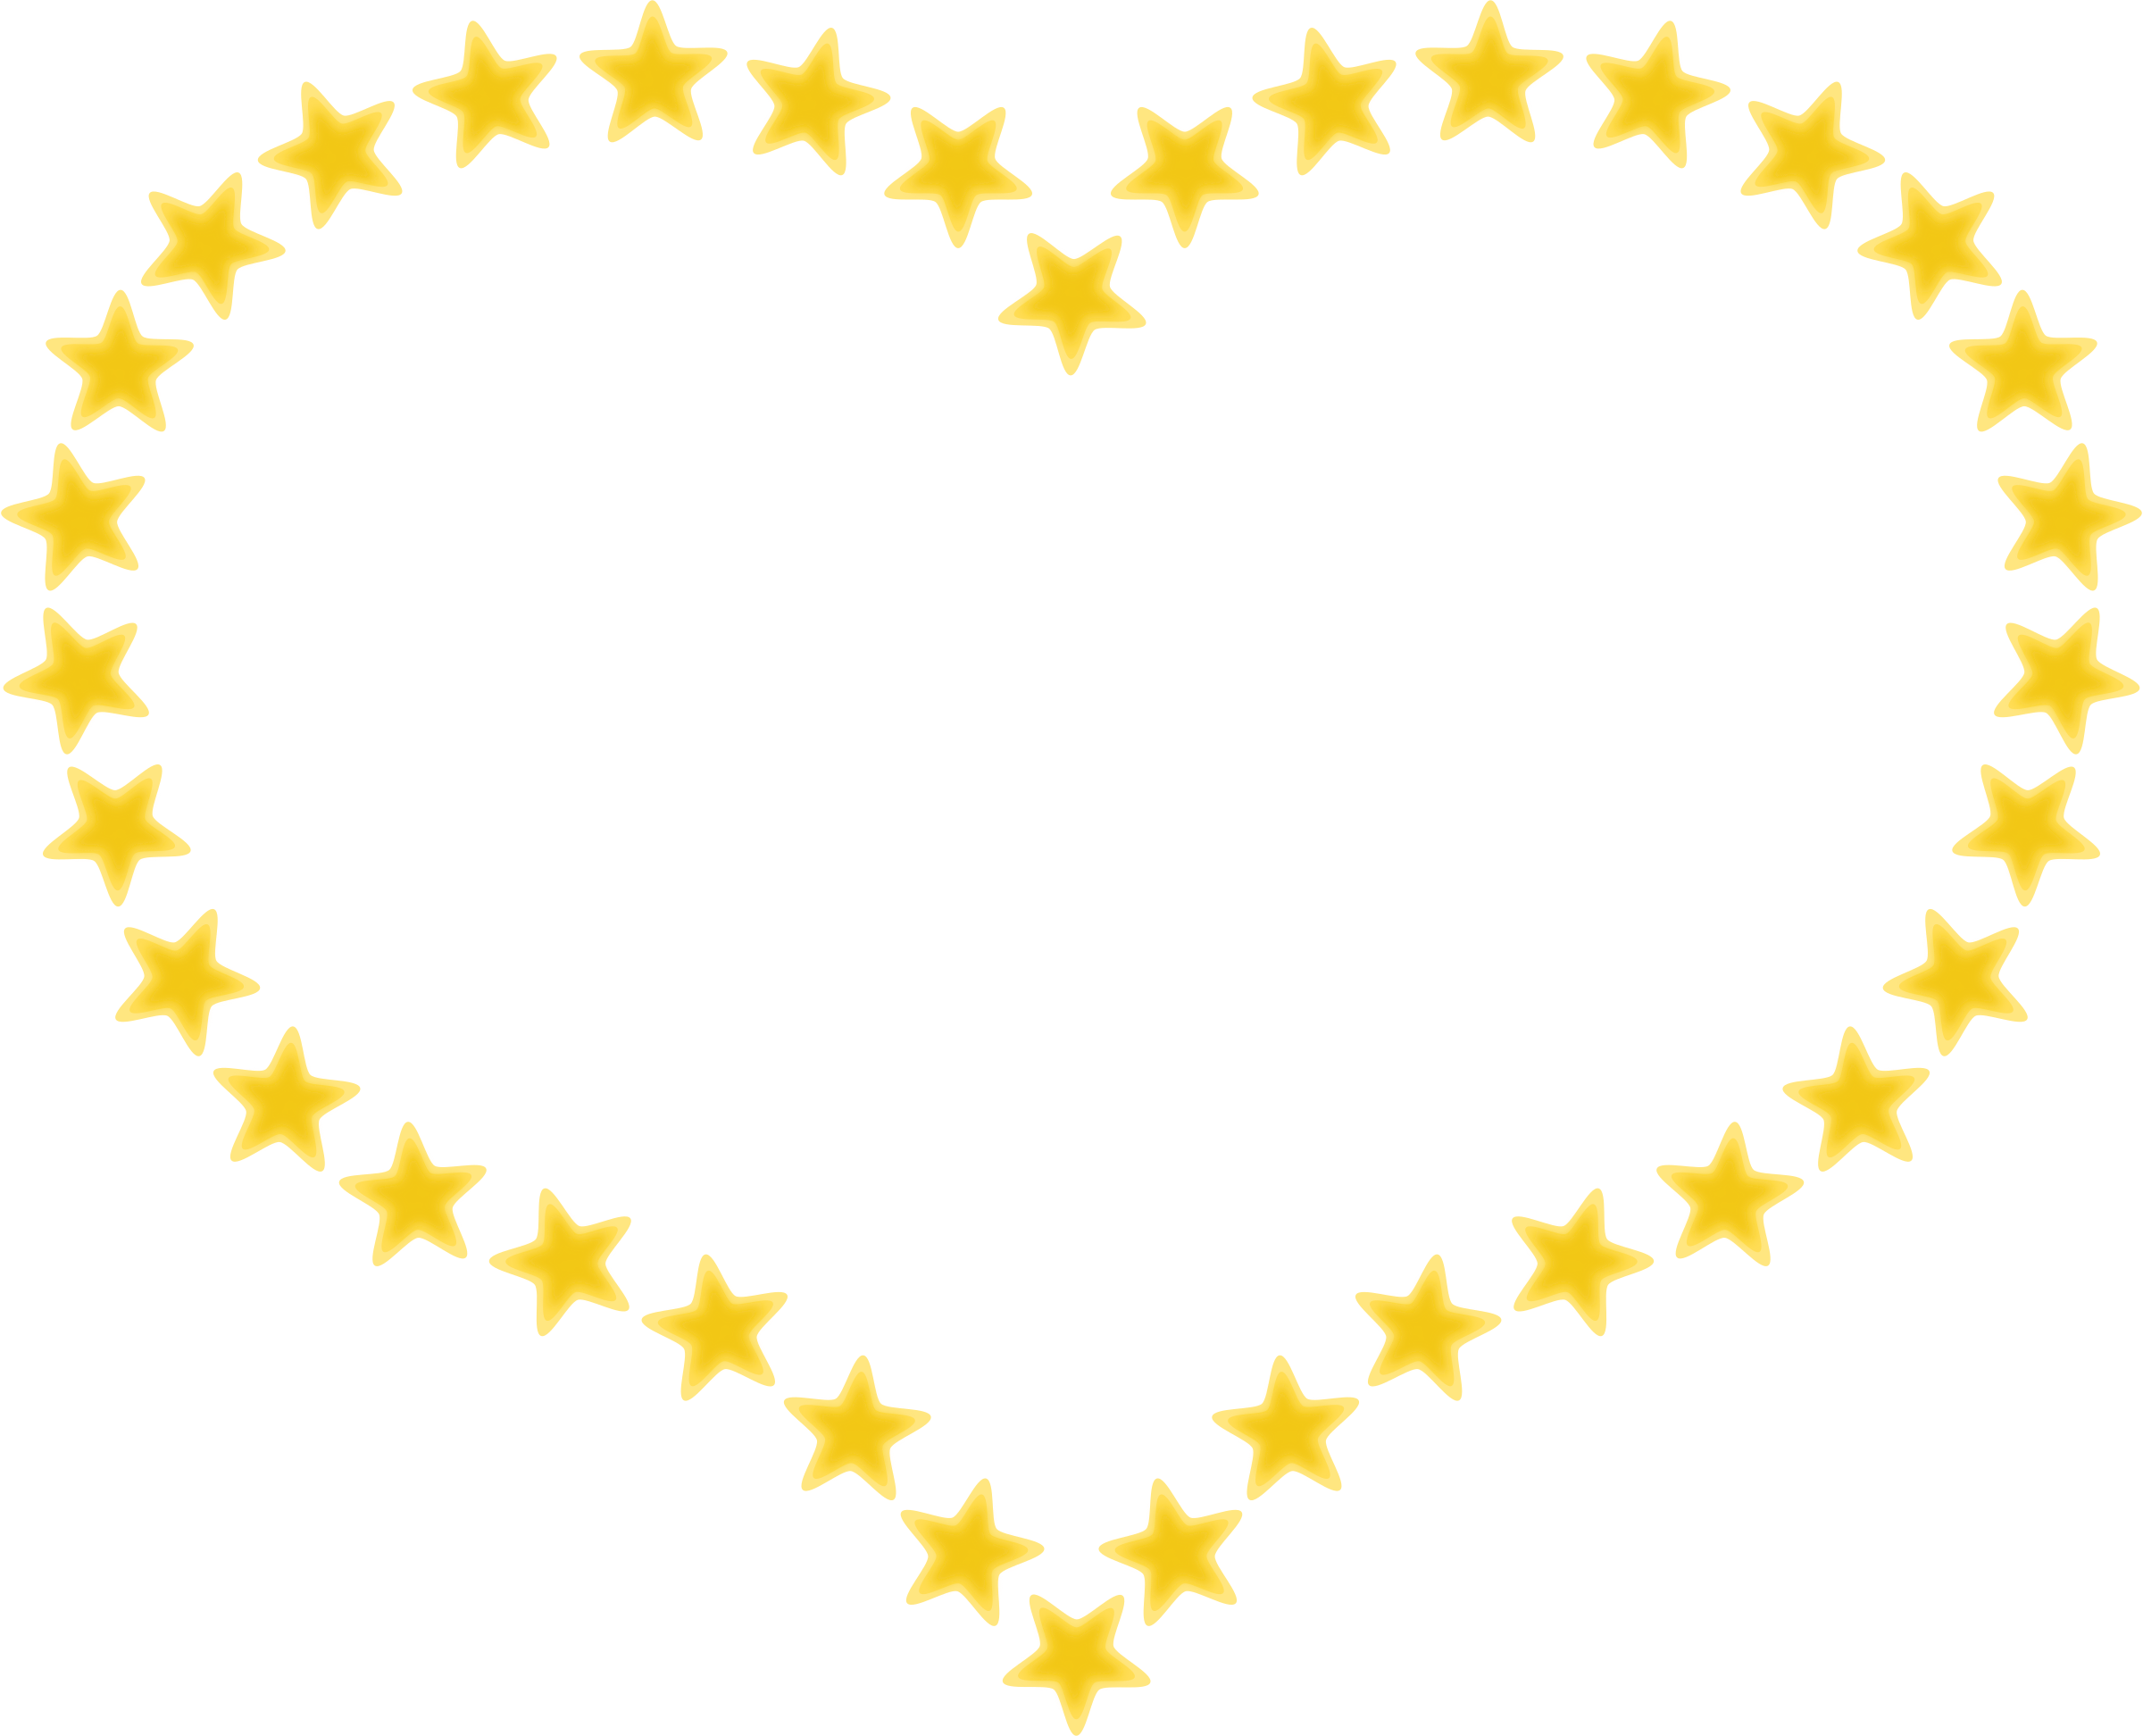 Star clip art heart. Clipart shaped border with